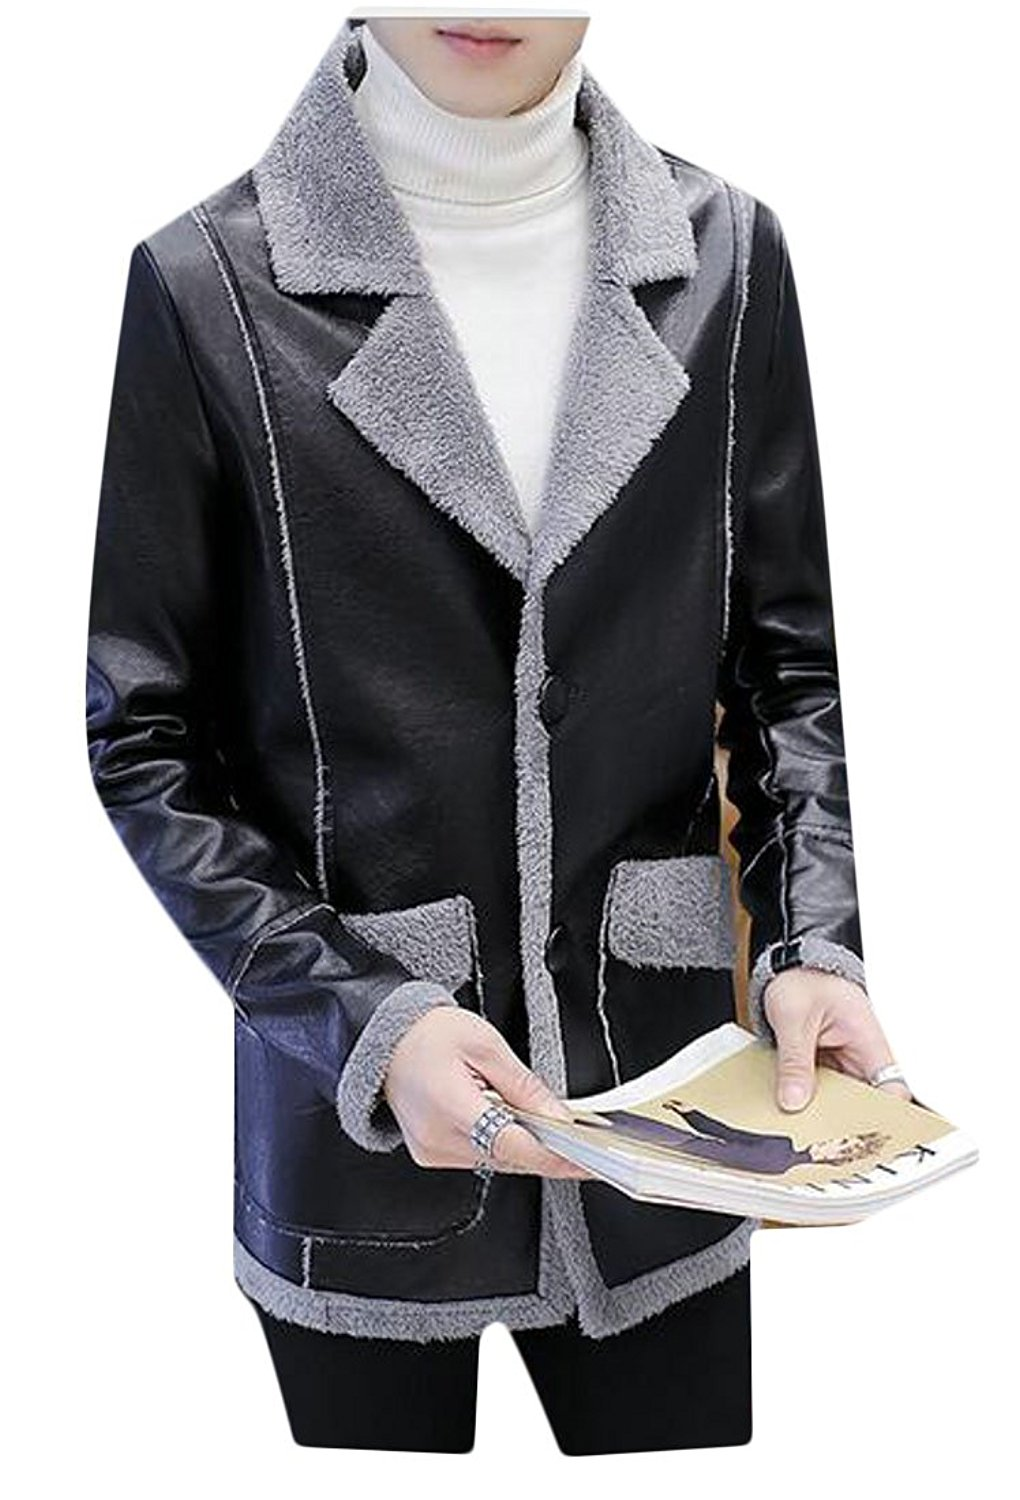 ONTBYB Mens Pu Leather Fleece Winter Motorcycle Single Breasted Thicken Jackets